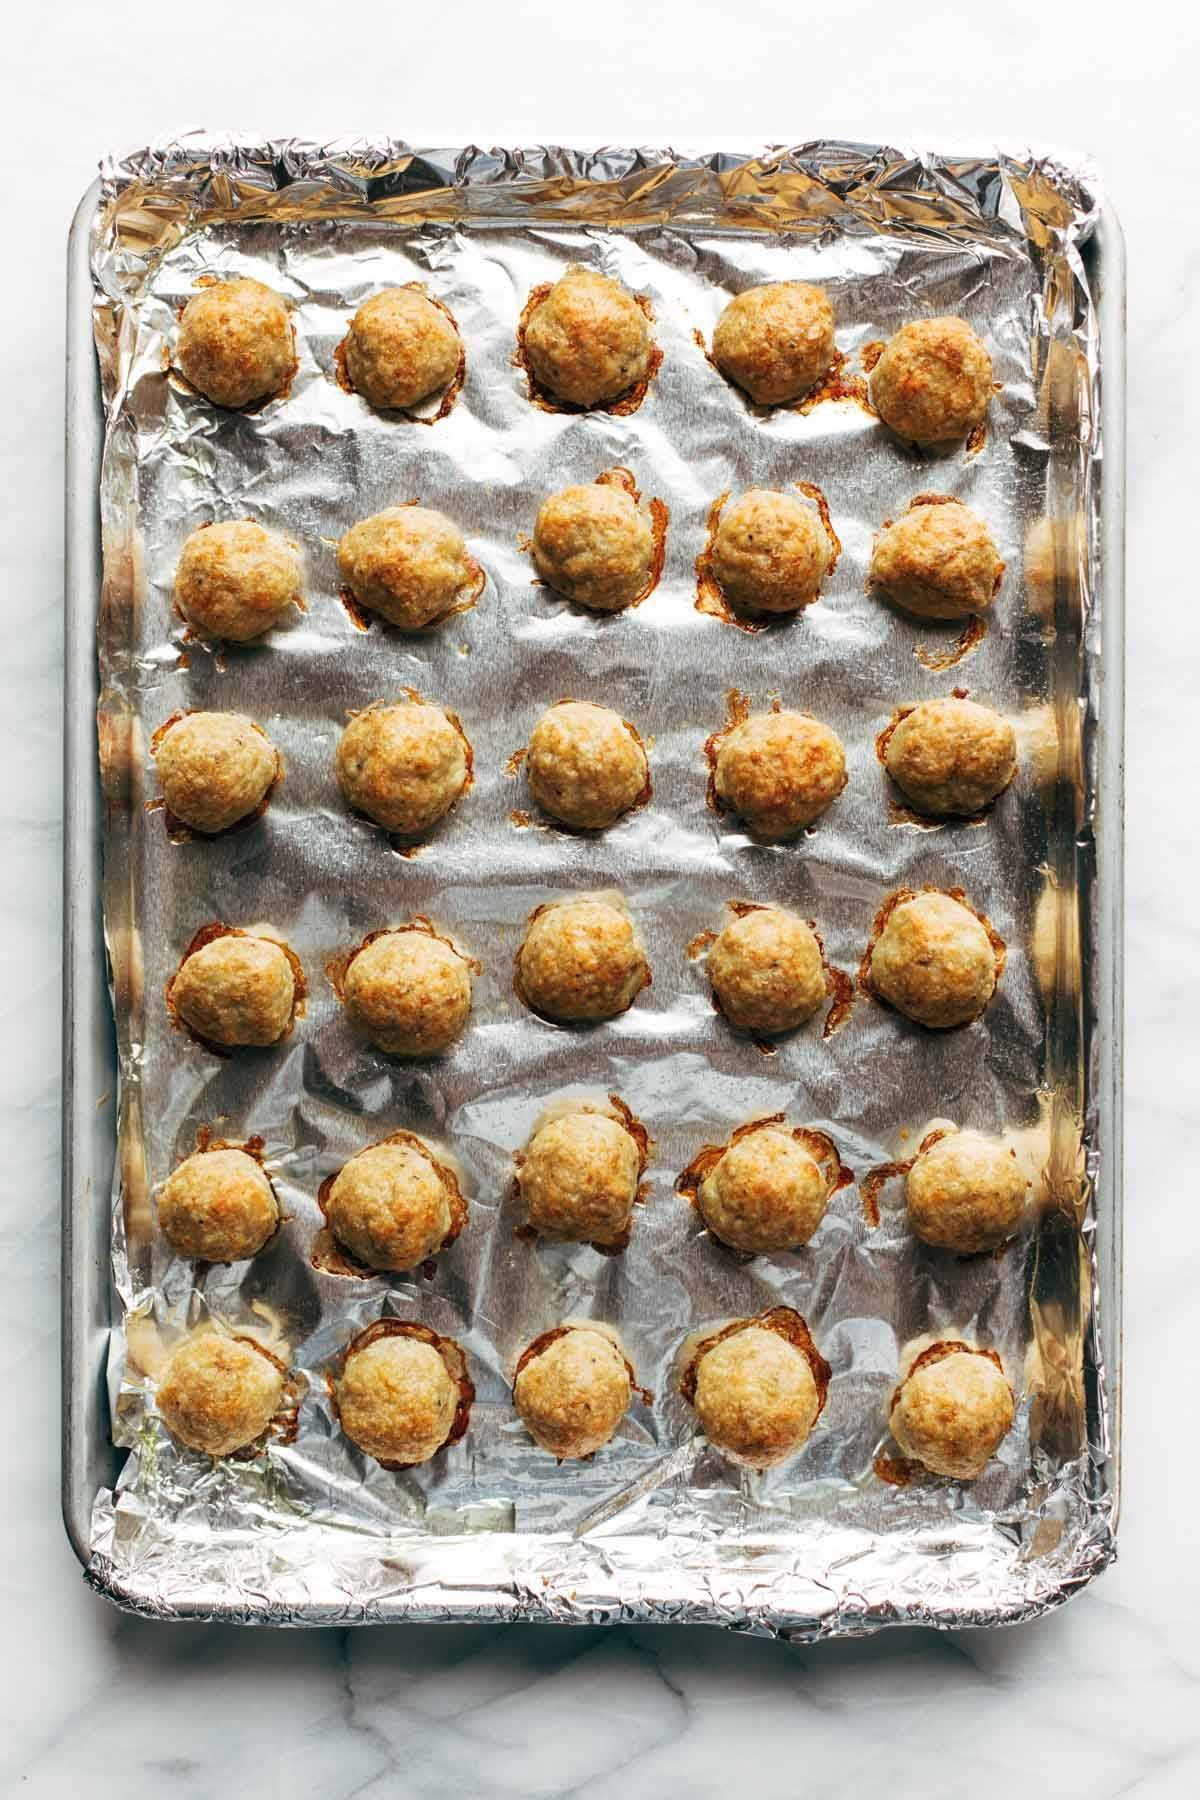 Baked Chicken Meatballs on a sheet pan.